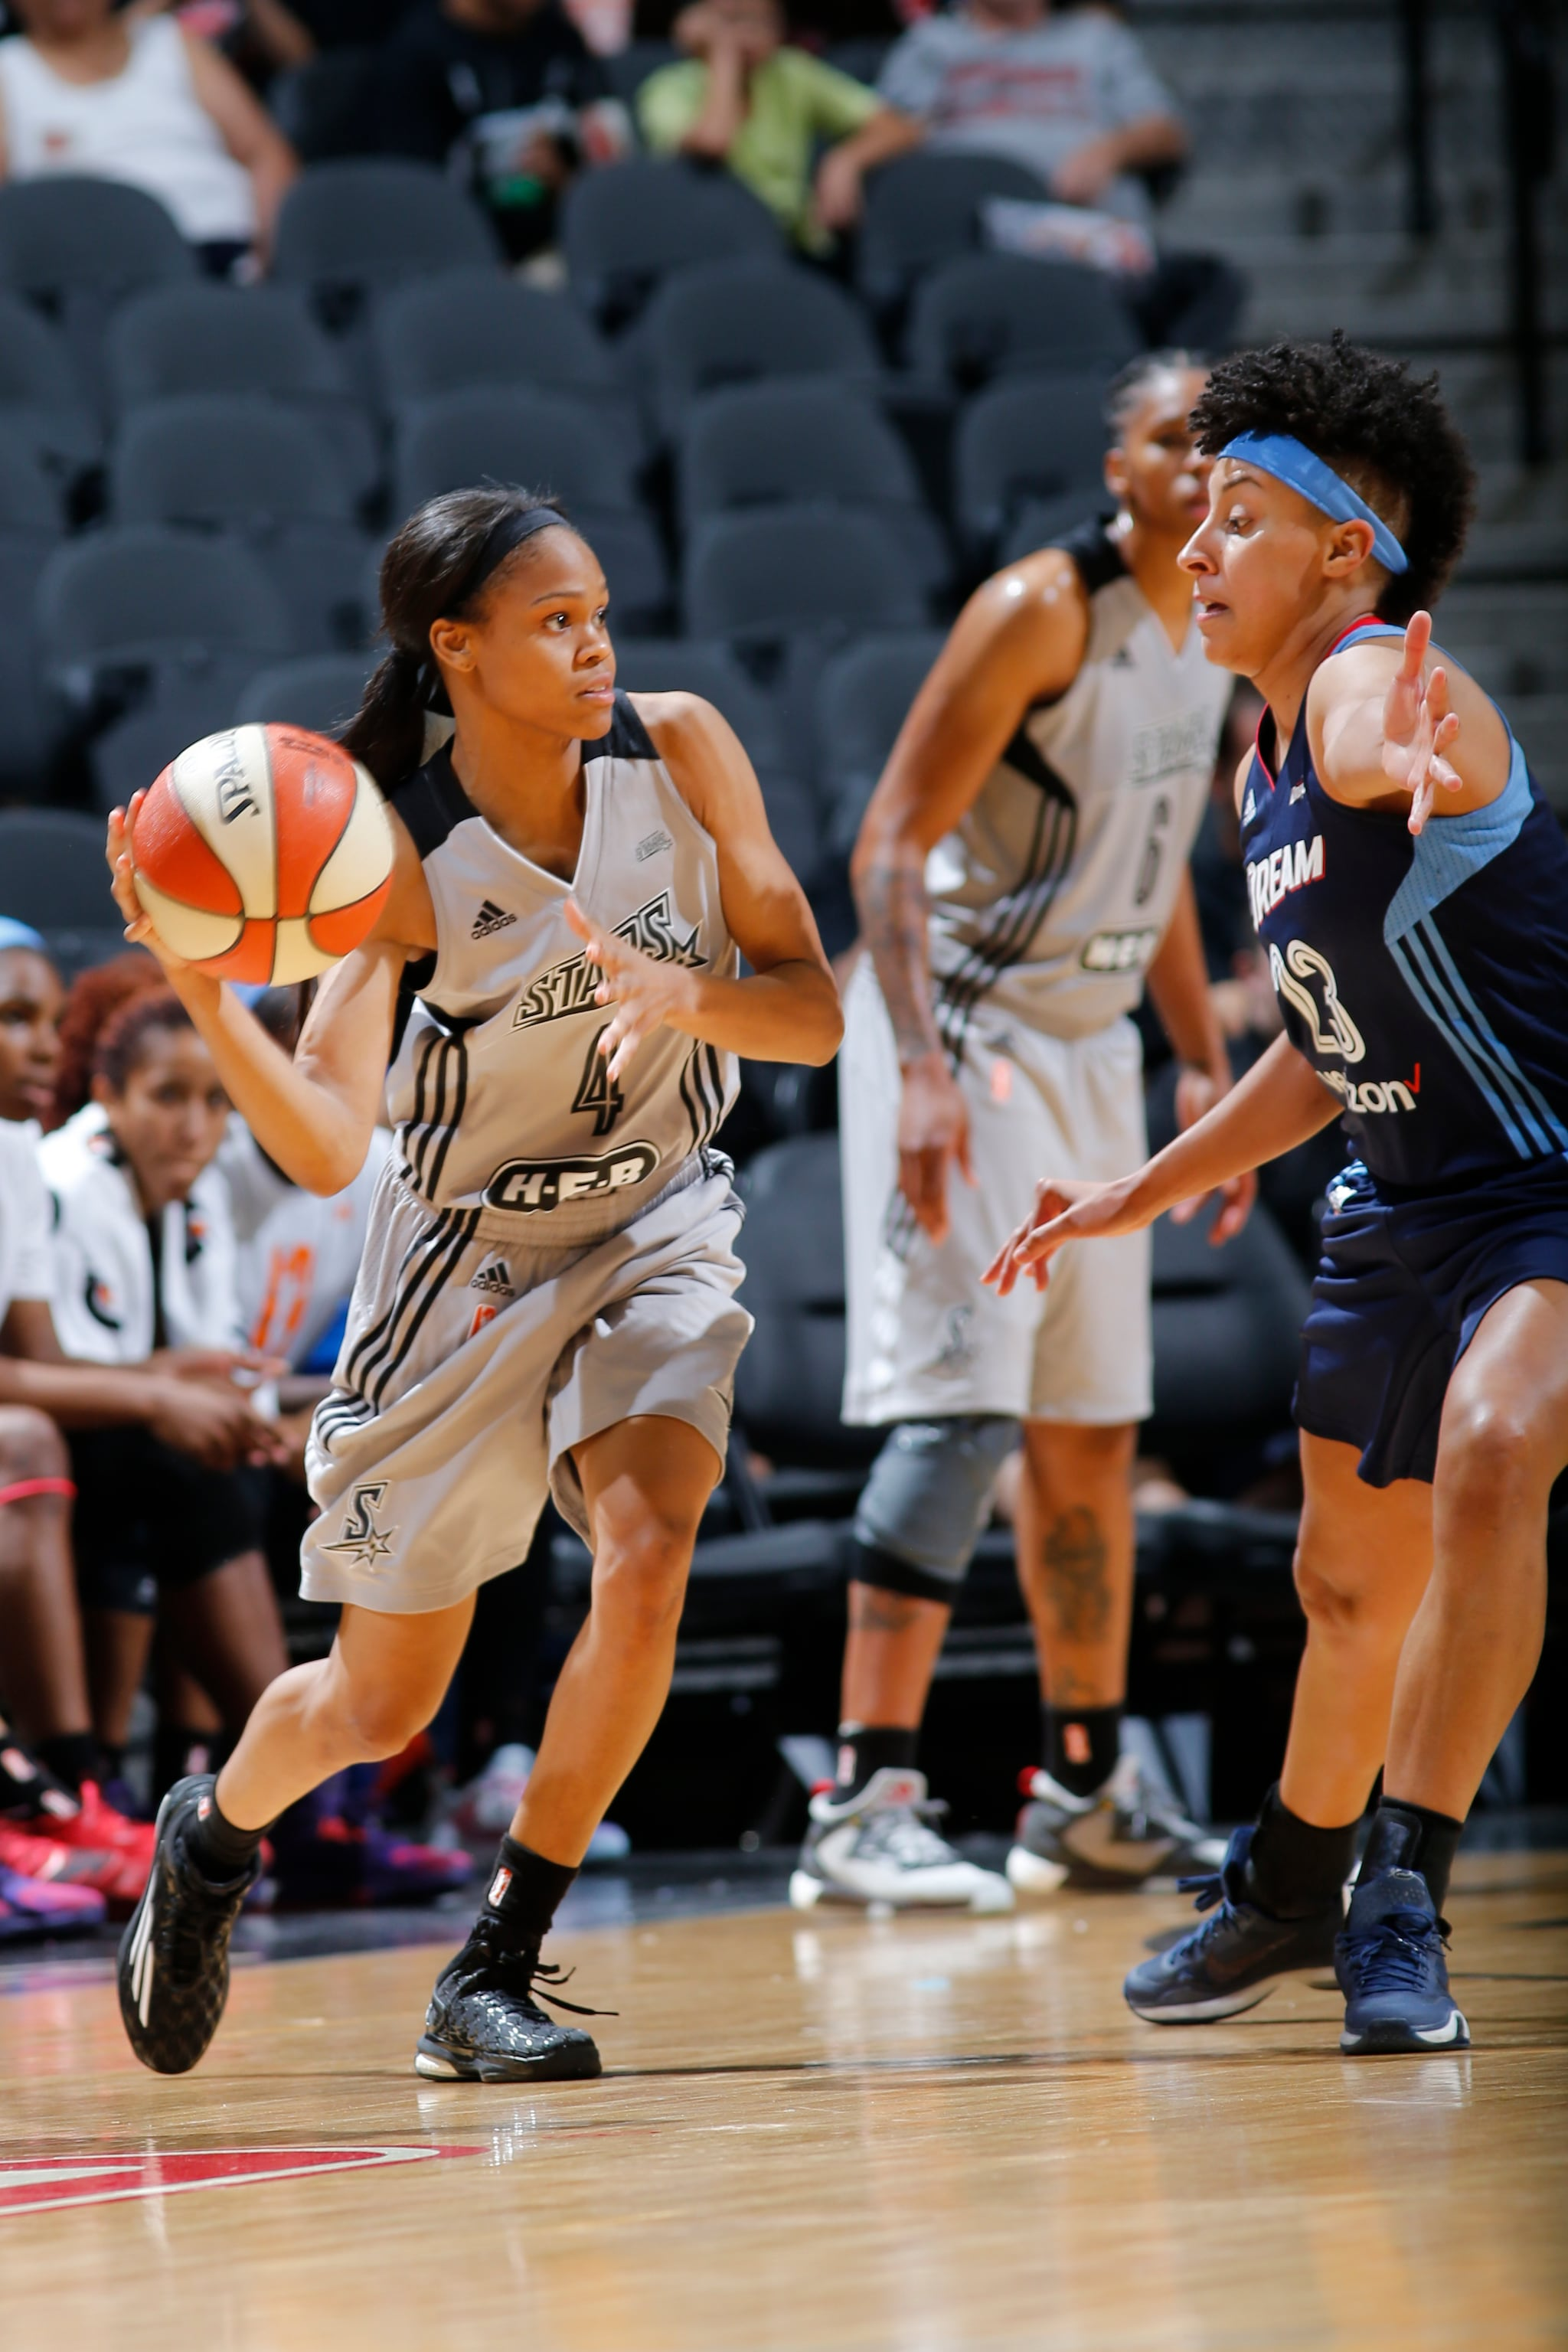 SAN ANTONIO, TX - MAY 14: Moriah Jefferson #4 of the San Antonio Stars moves the ball against the Atlanta Dream during the game on May 14, 2016 at AT&T Center in San Antonio, Texas. NOTE TO USER: User expressly acknowledges and agrees that, by downloading and or using this Photograph, user is consenting to the terms and conditions of the Getty Images License Agreement. Mandatory Copyright Notice: Copyright 2016 NBAE (Photo by Chris Covatta/NBAE via Getty Images)